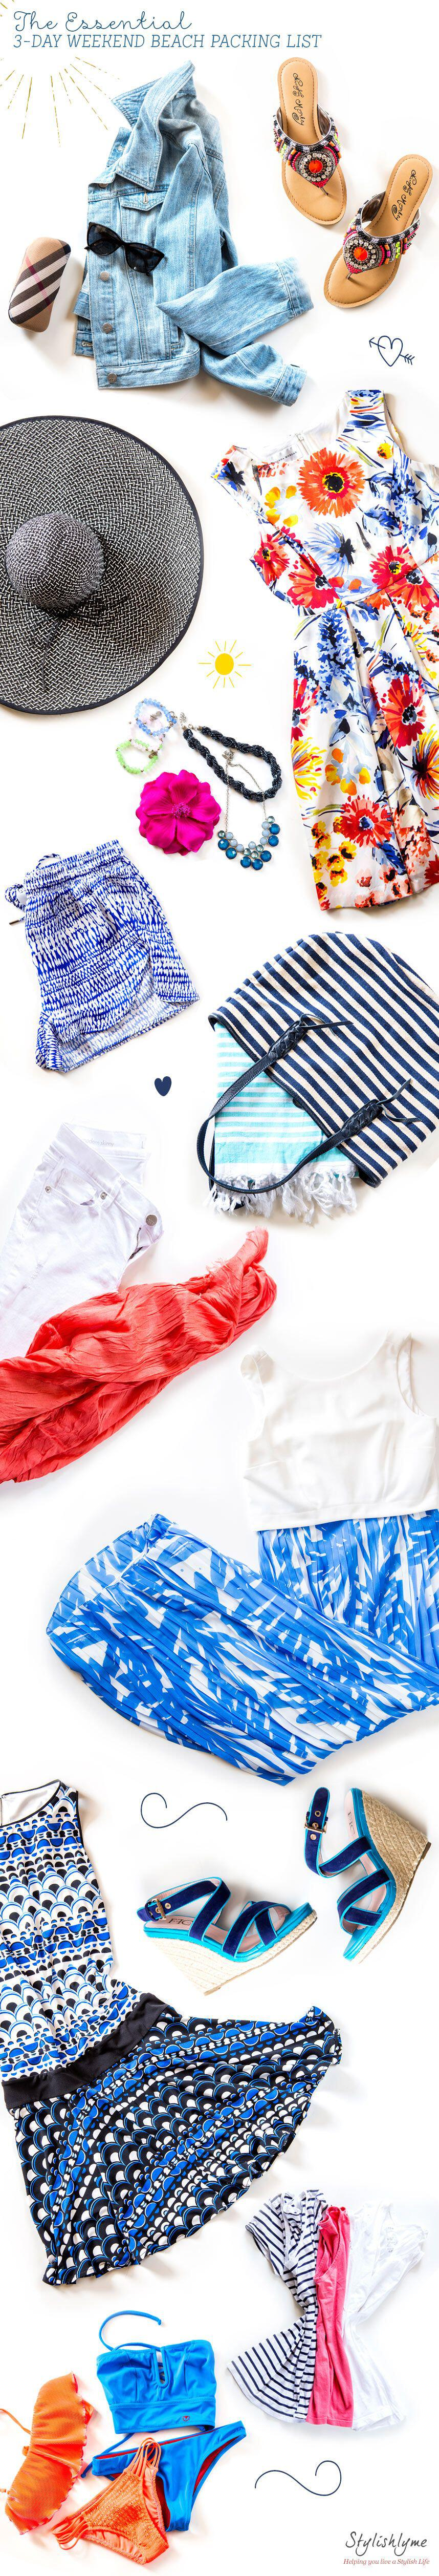 what to pack for a weekend at the beach 1 - What to pack for a weekend at the beach